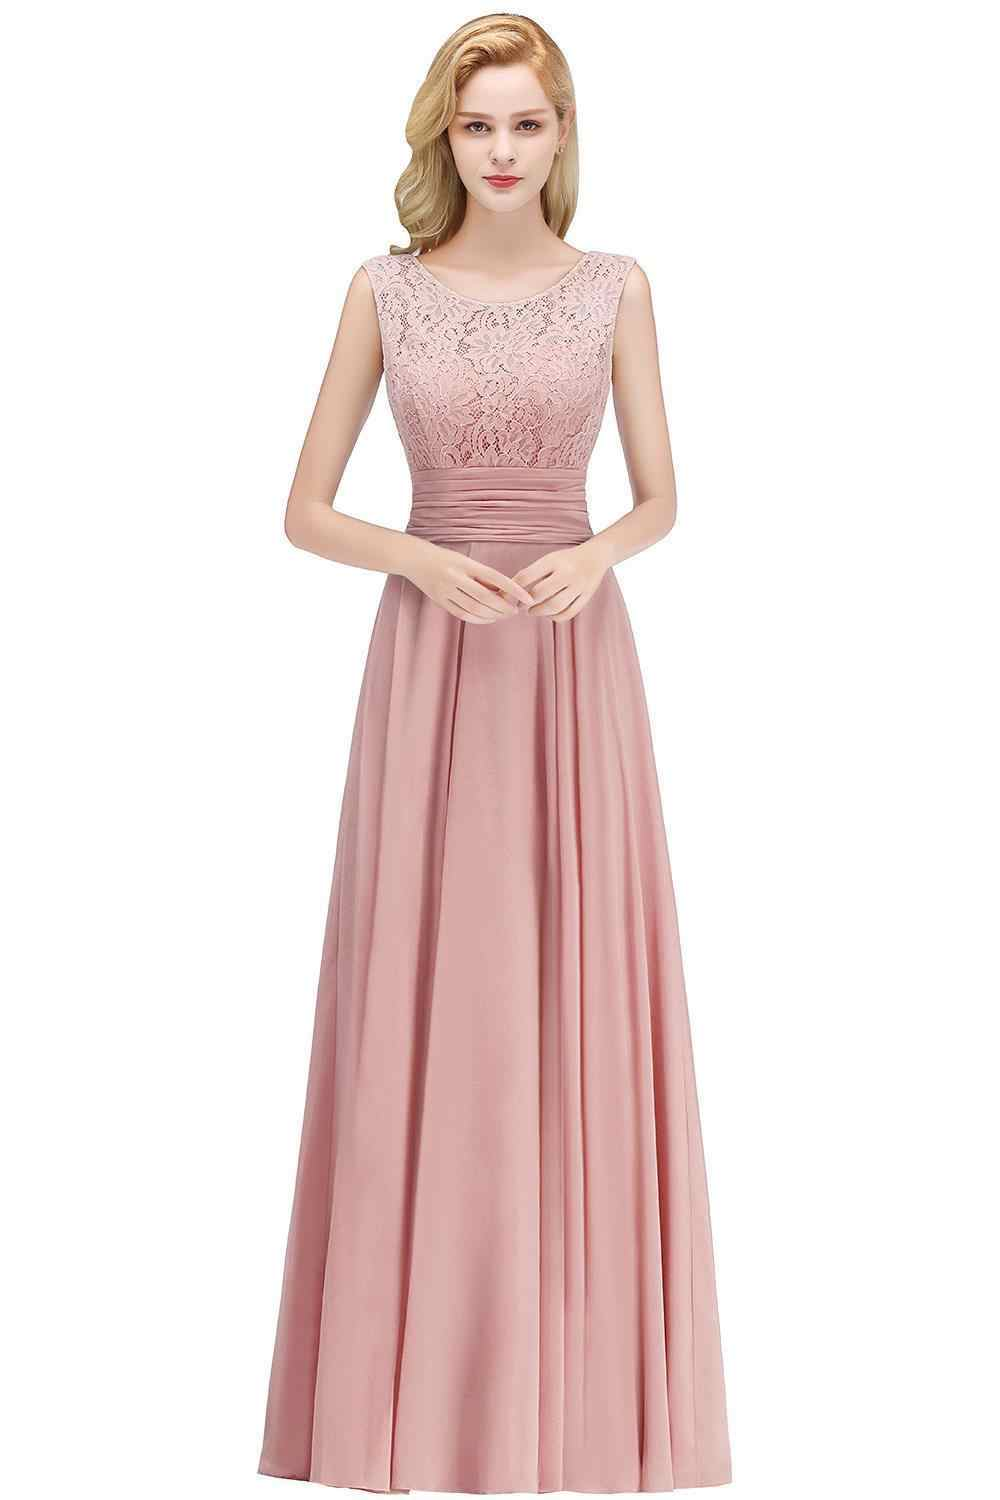 4043b42c774b Detail Feedback Questions about Elegant Lace Long Bridesmaid Dresses 2019  Sleeveless Chiffon Ruched Wedding Guest Maid Of Honor Party Dresses on ...